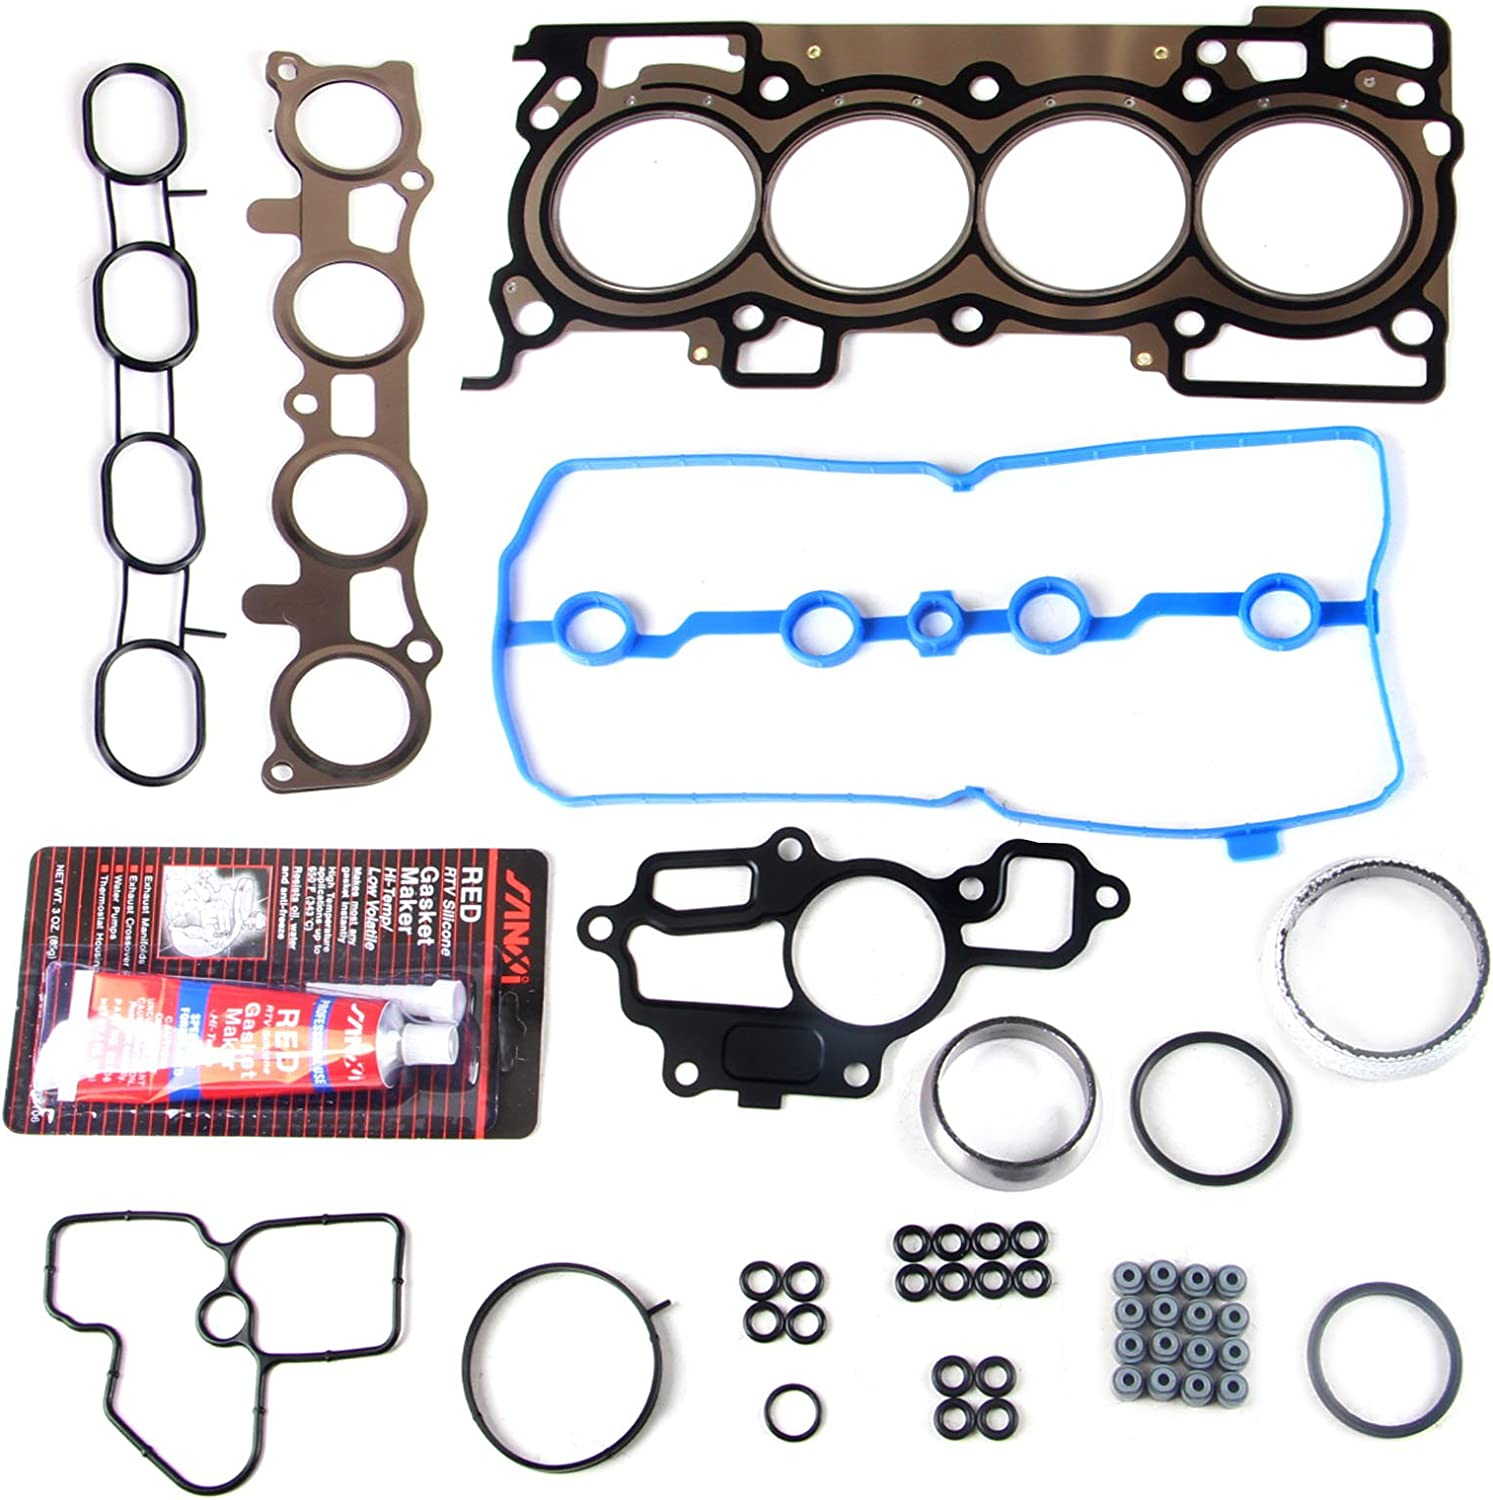 cciyu Head Gasket Kit for Versa Nissan Cube Nissan Sentra 2007-2012 Replacement fit for HS9522PT Head Gaskets Set Kits